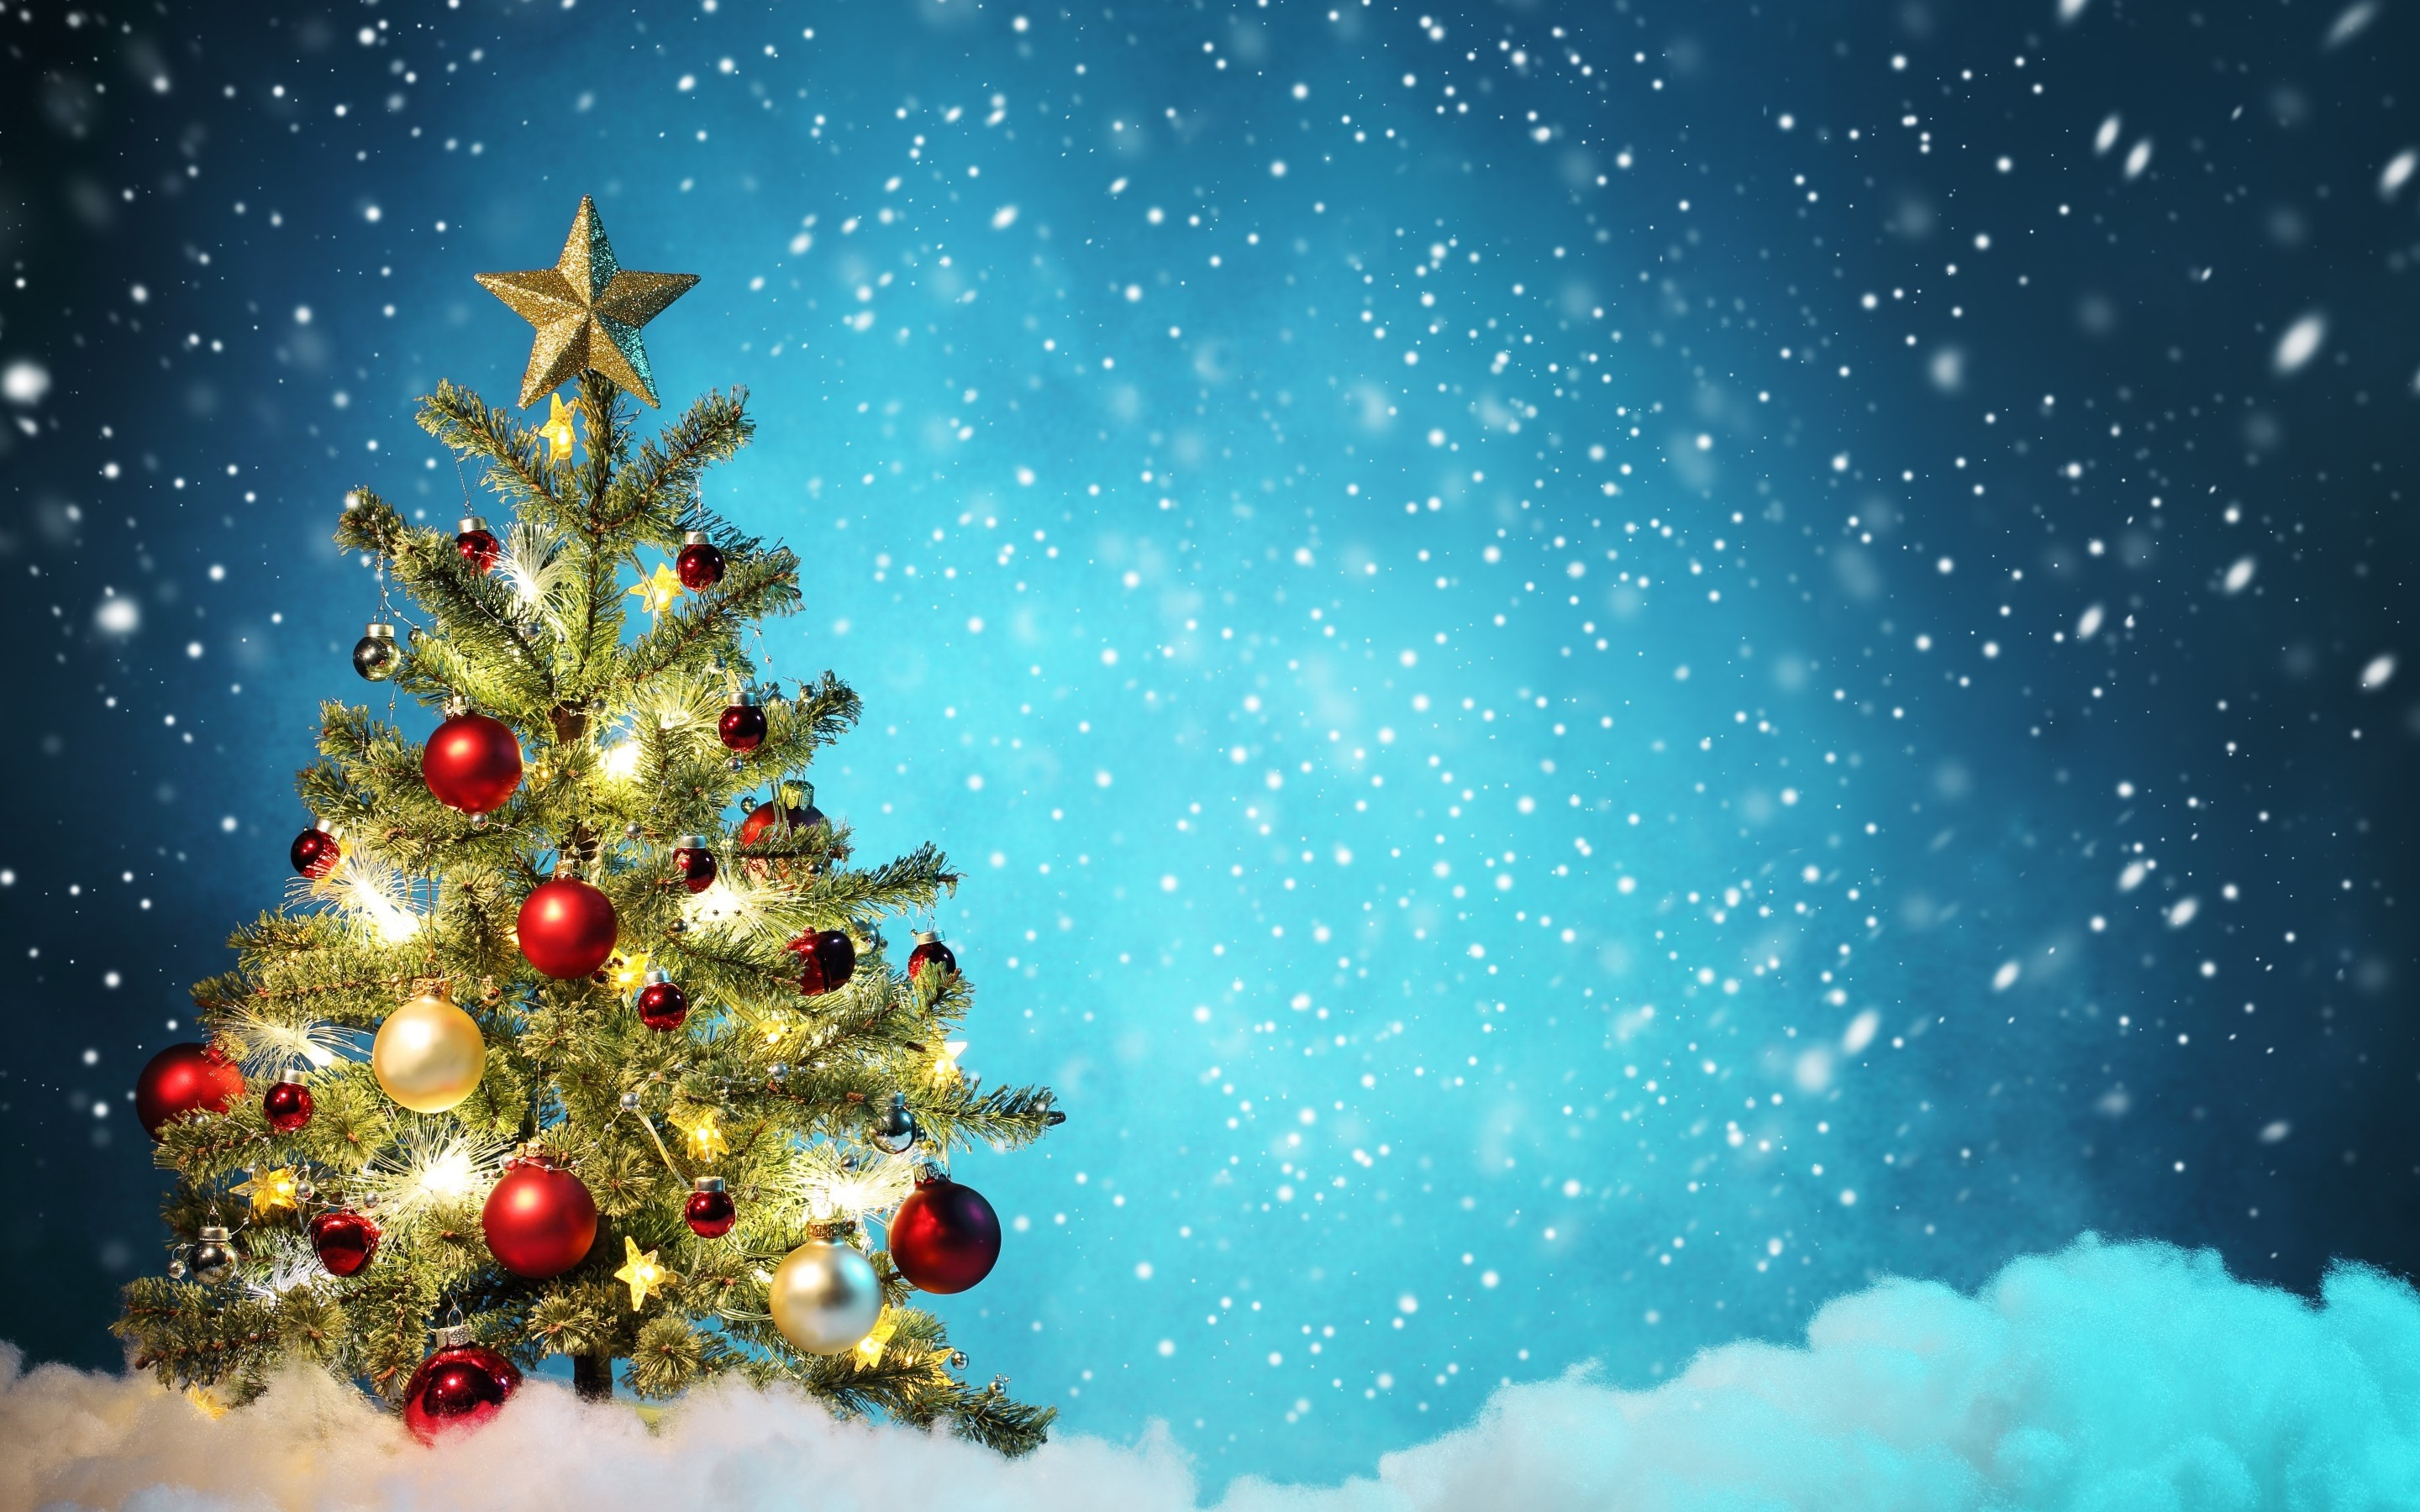 Christmas Tree Background 50 Images